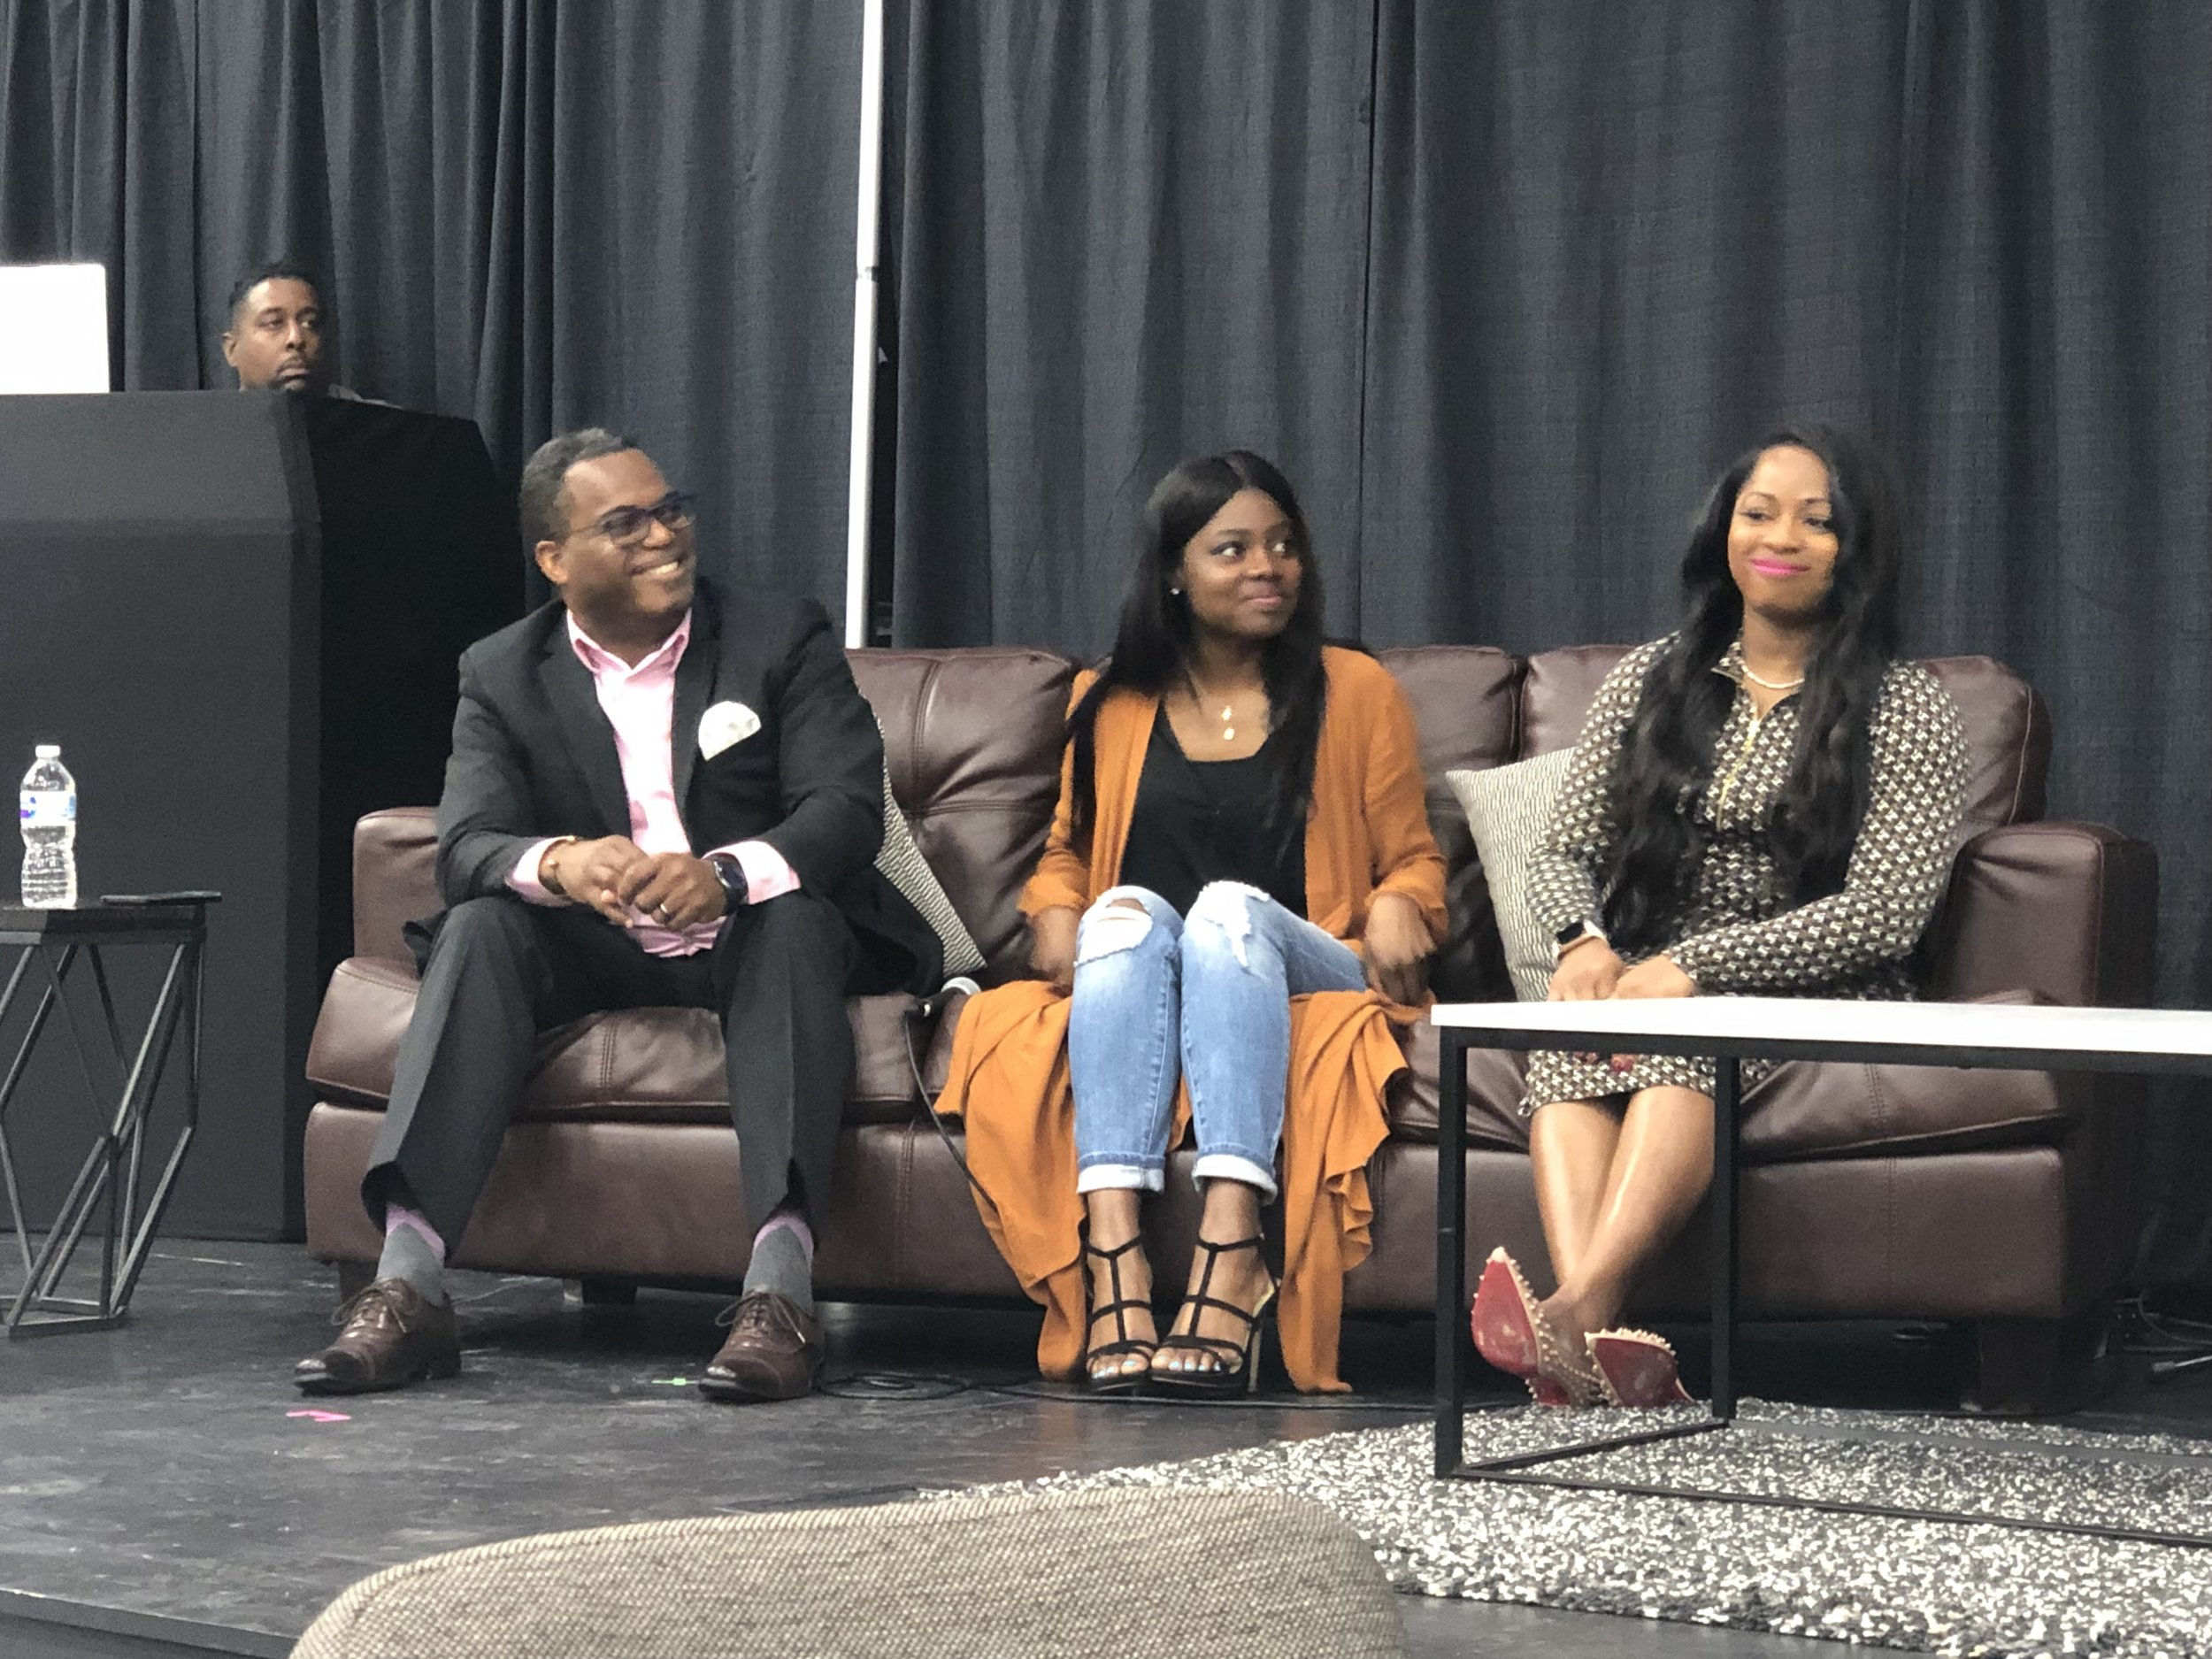 """- Meet the """"Expert Panelist"""" , (l to r) Galherbe Monel, Jasmine Smith, and Tanita Brinkley. They all gave advice on the financial side of being an entrepreneur. Mr. Monel specializes in non-profits and can be found on all platforms at Non-Profit Start Up Center. Jasmine gave insight on marketing and she can help you figure out the best strategy to execute your ideas. She can be found on IG @iamjayesmith. Tanita Brinkley is the money lady! She discussed the in-and-outs of taxes and business accounts. Find her on IG @tanitabrinkley!"""